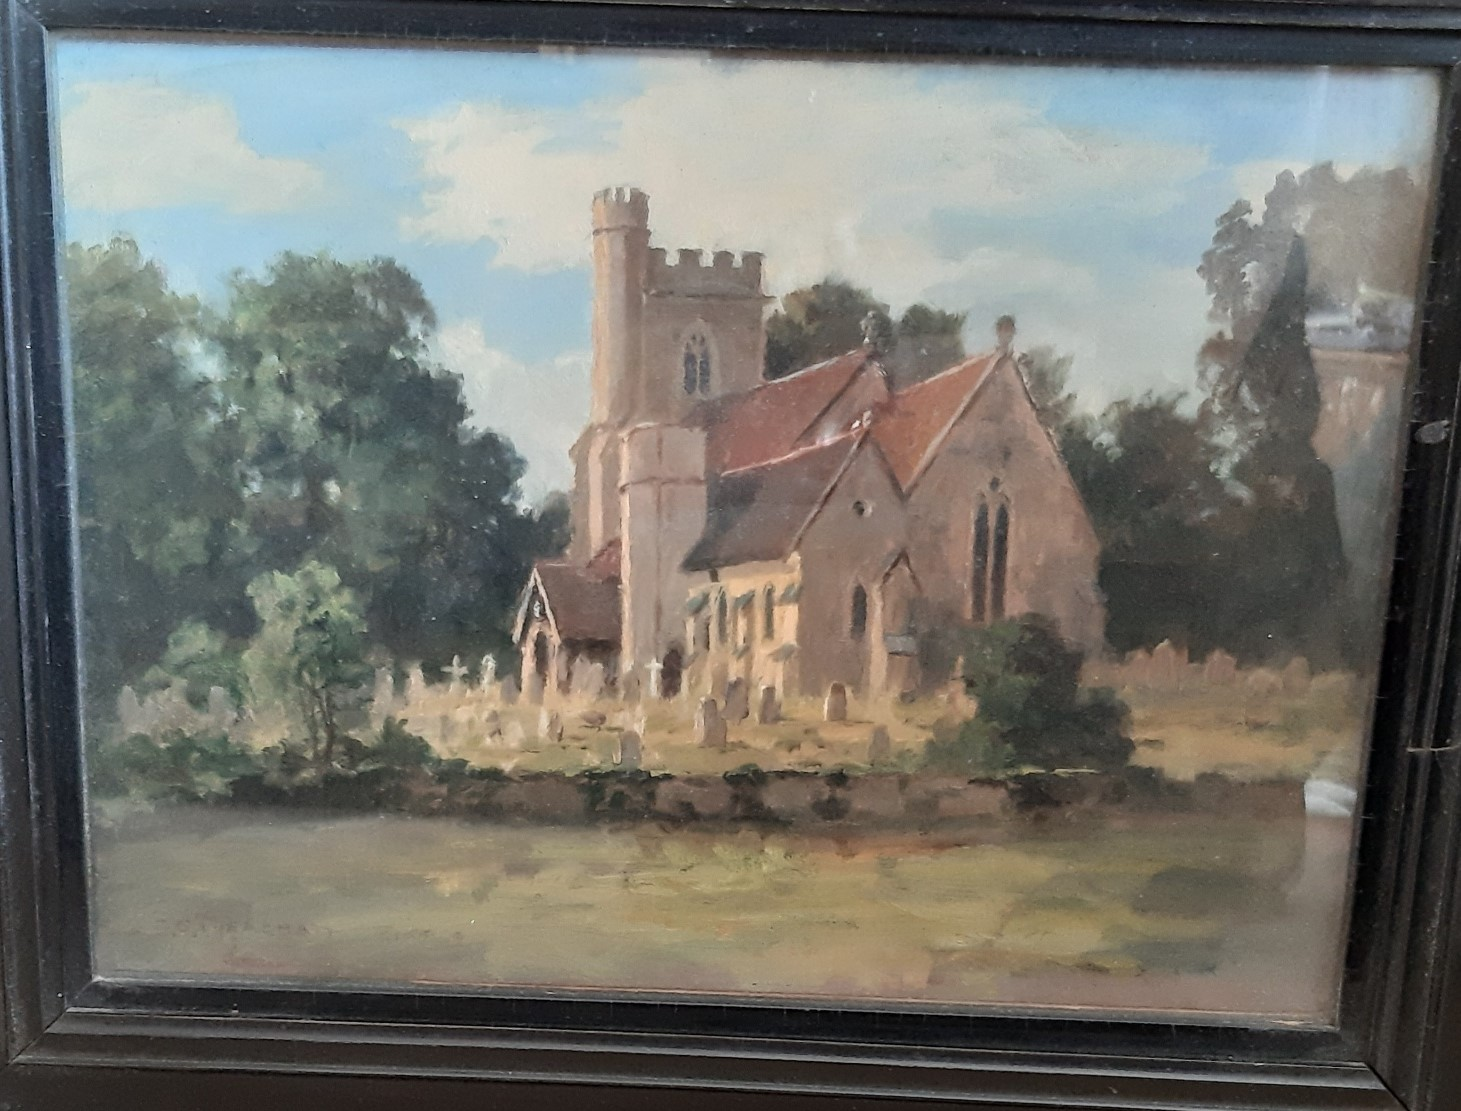 Leigh Church by Charles Stephen Meacham ca. 1930 (property of Leigh Historical Society)